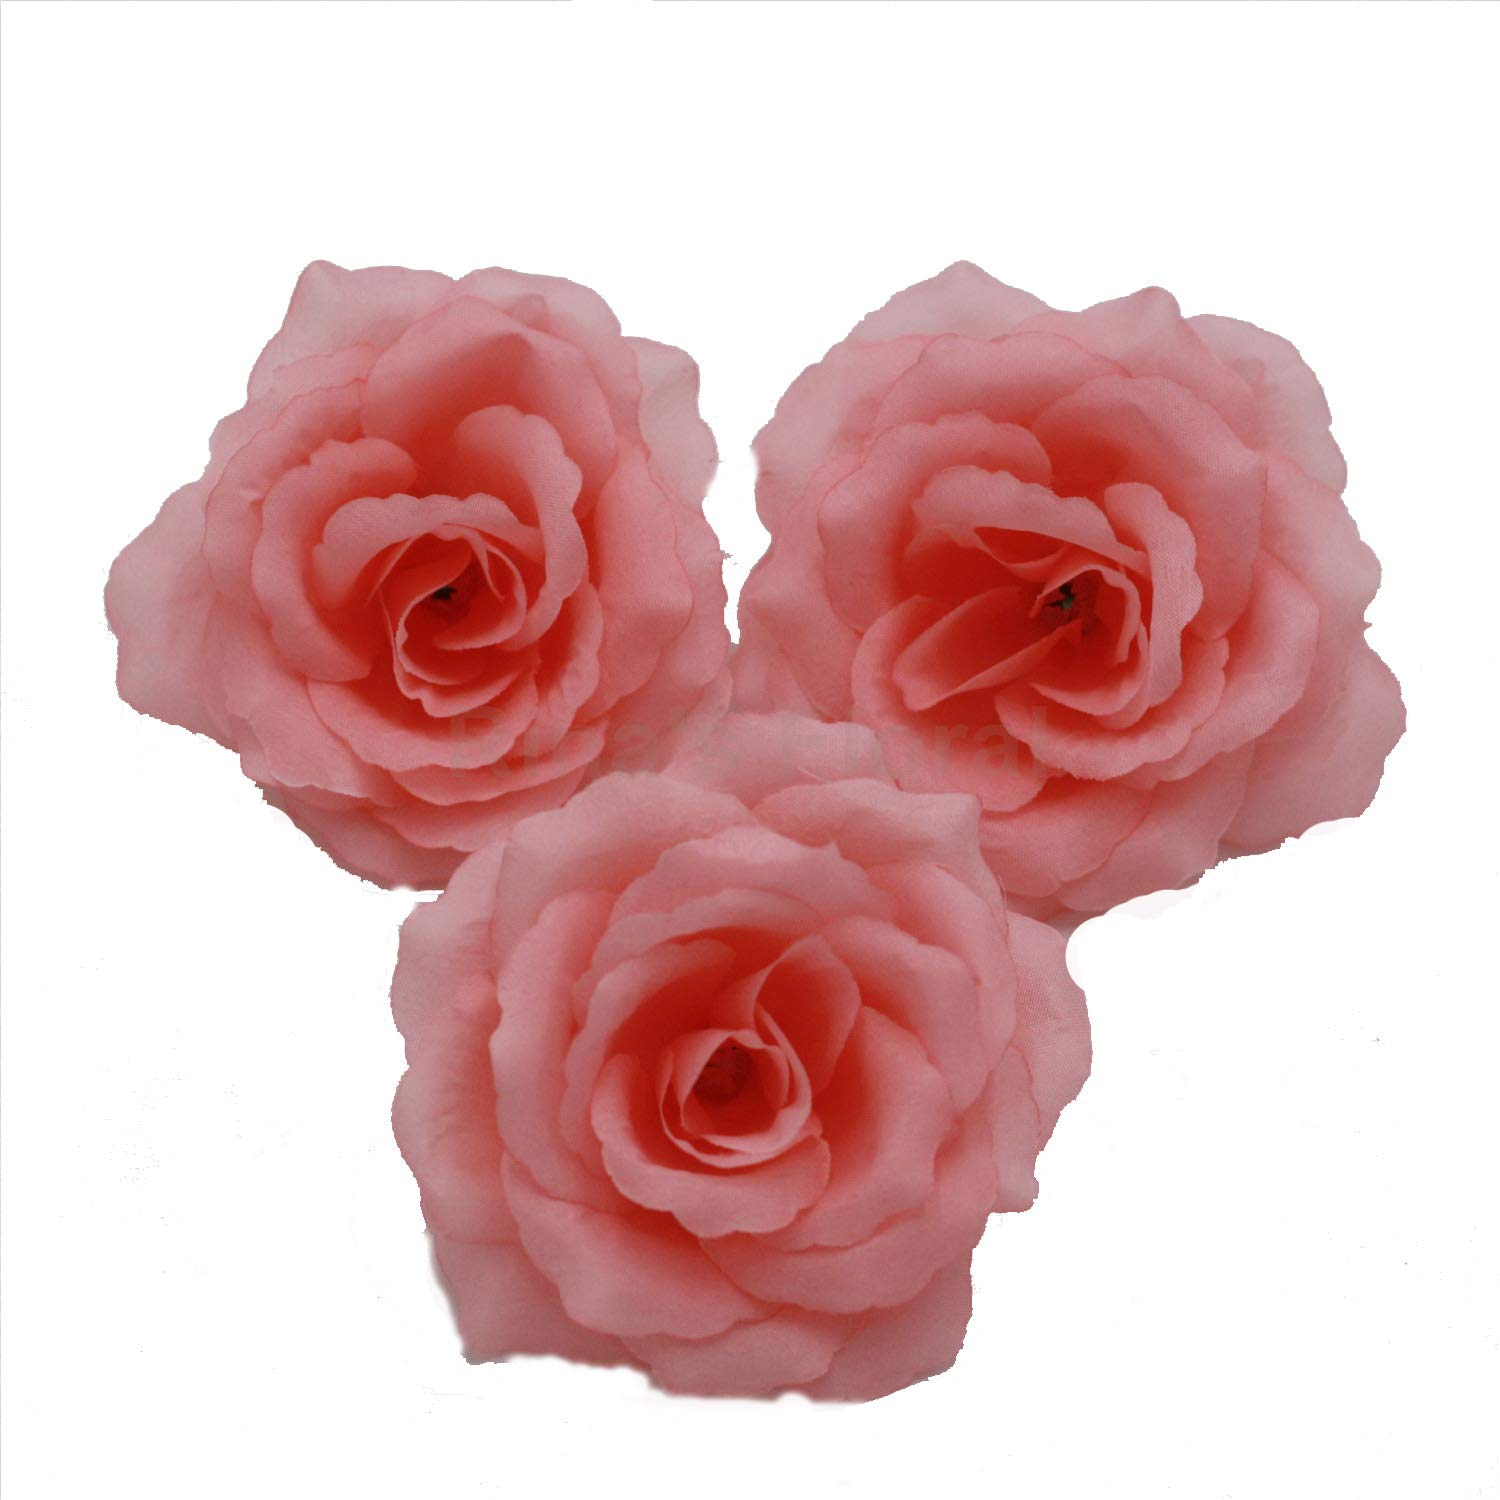 with leaves and long stems 10-100pcs Coral Silk Roses Head Artificial Roses Flower Head for Wedding Bouquets Wall Decoration Centerpieces